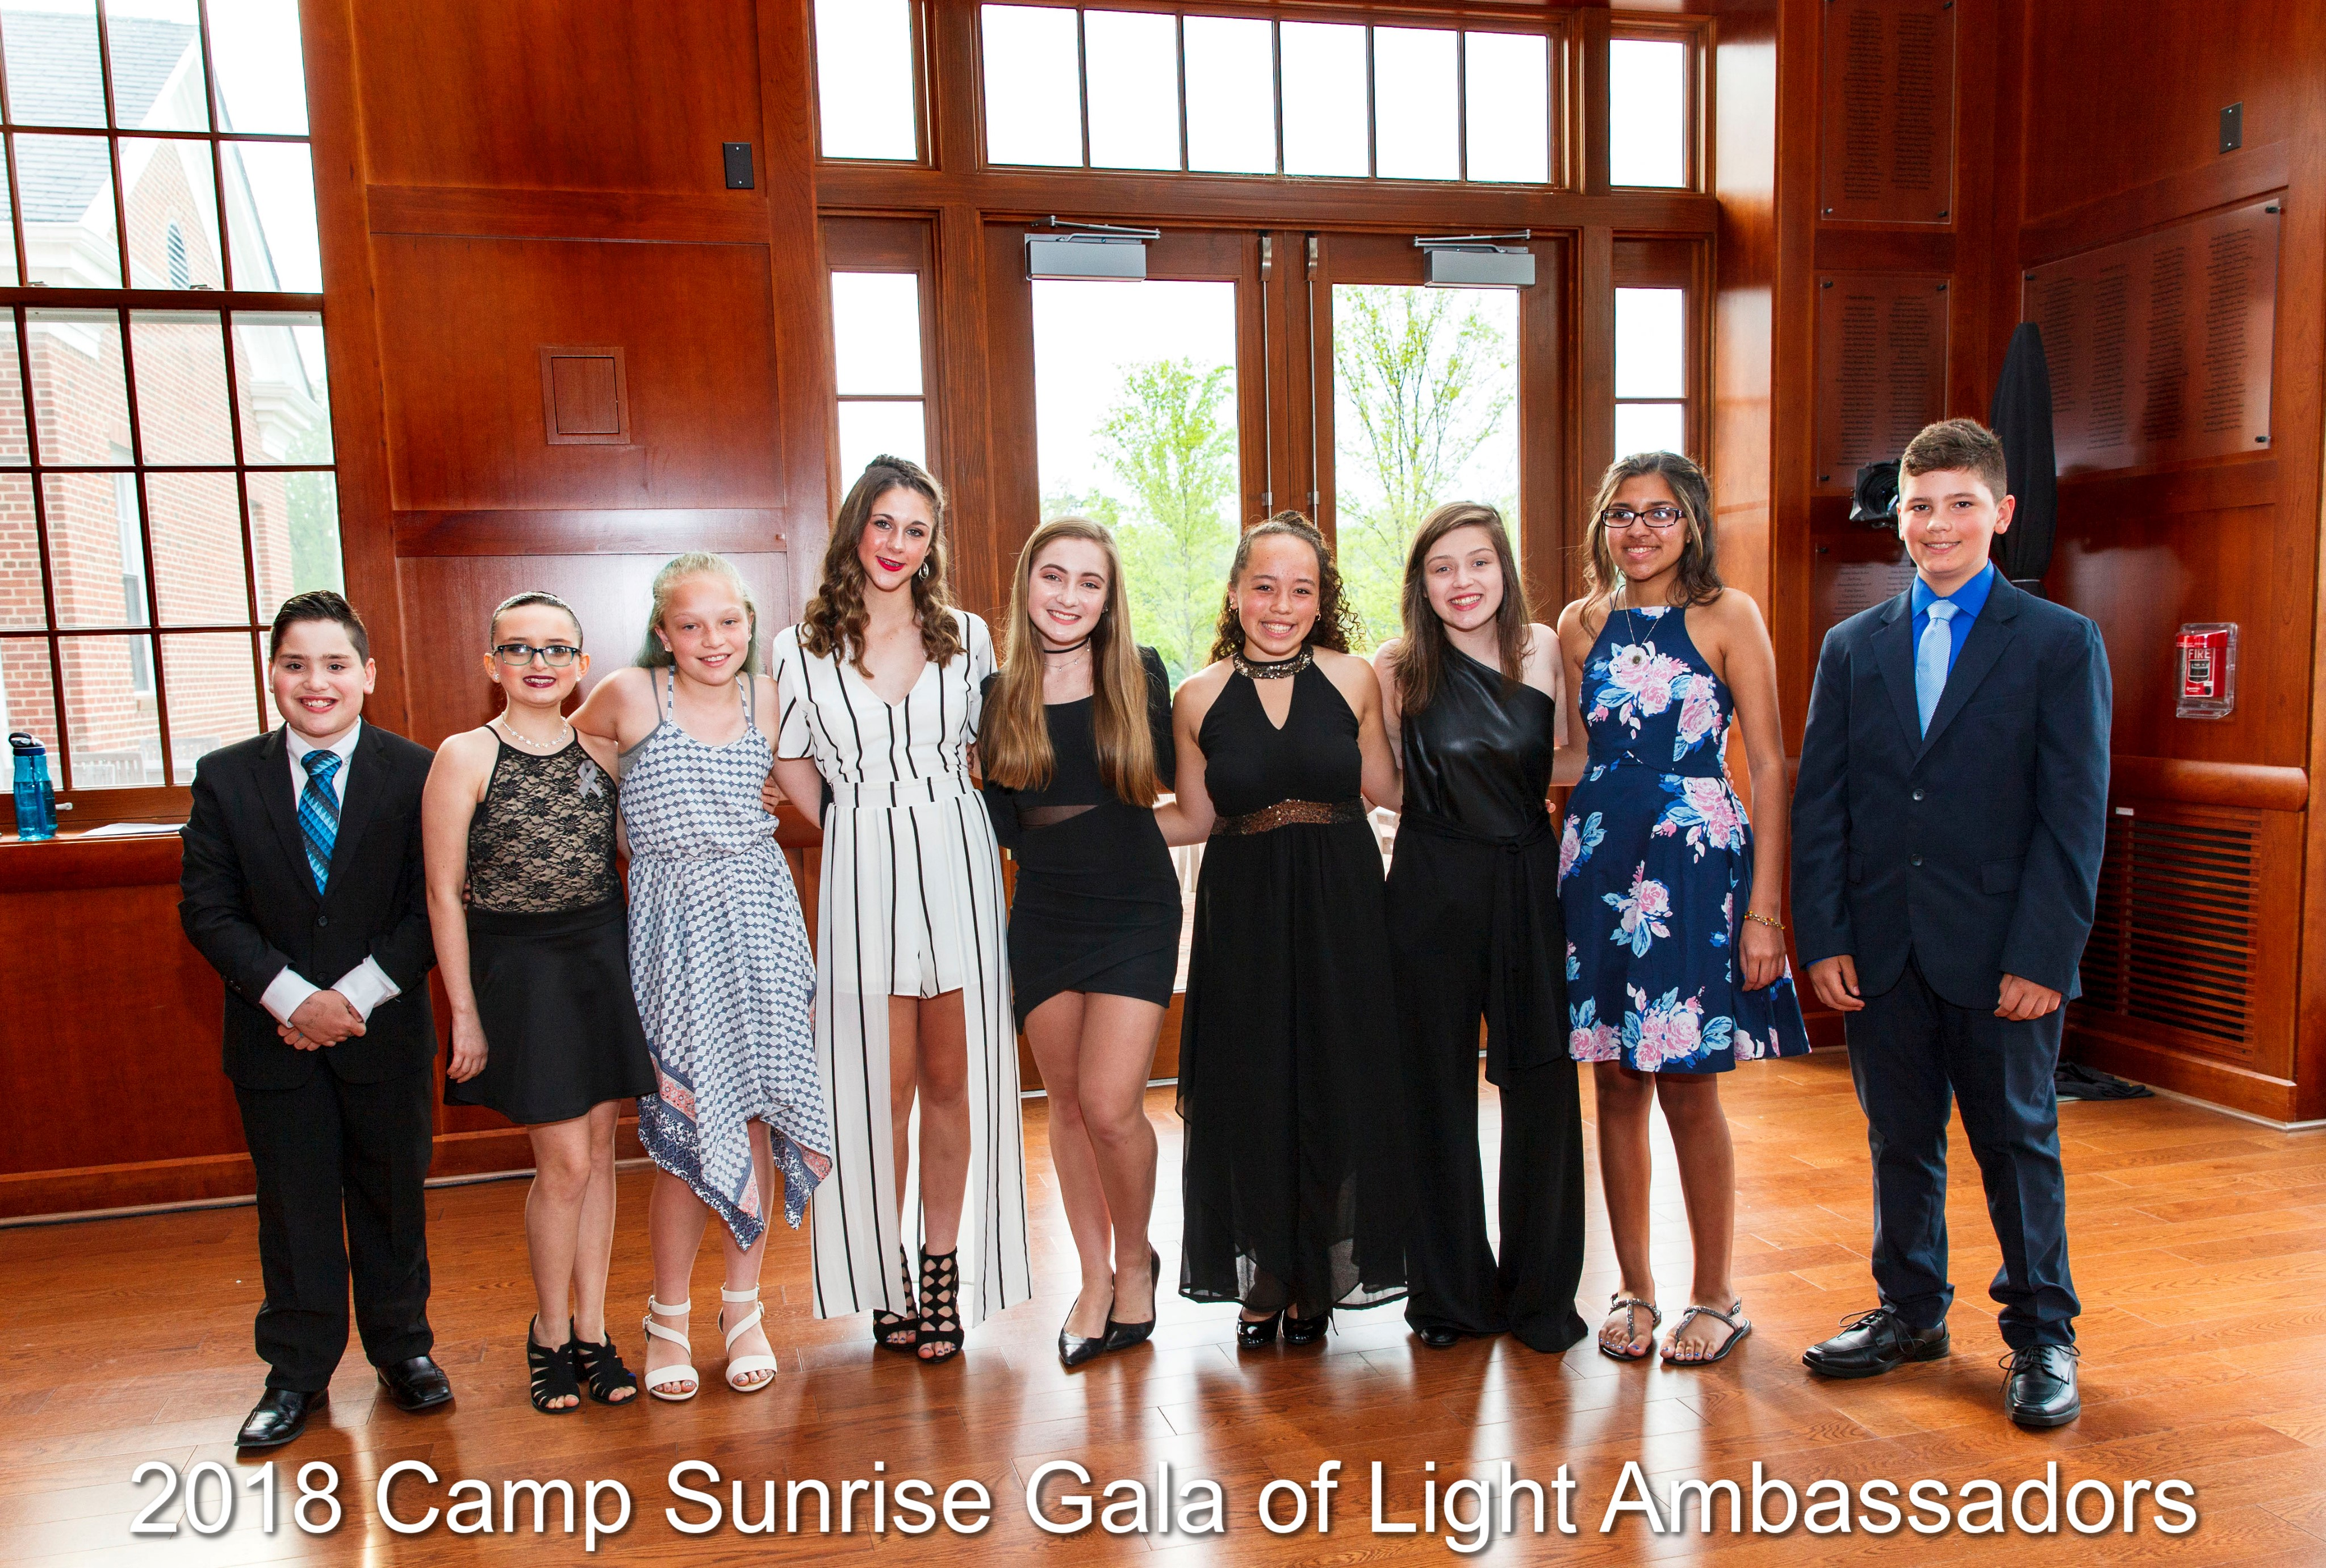 2018 Camp Sunrise Gala of Light Ambassadors